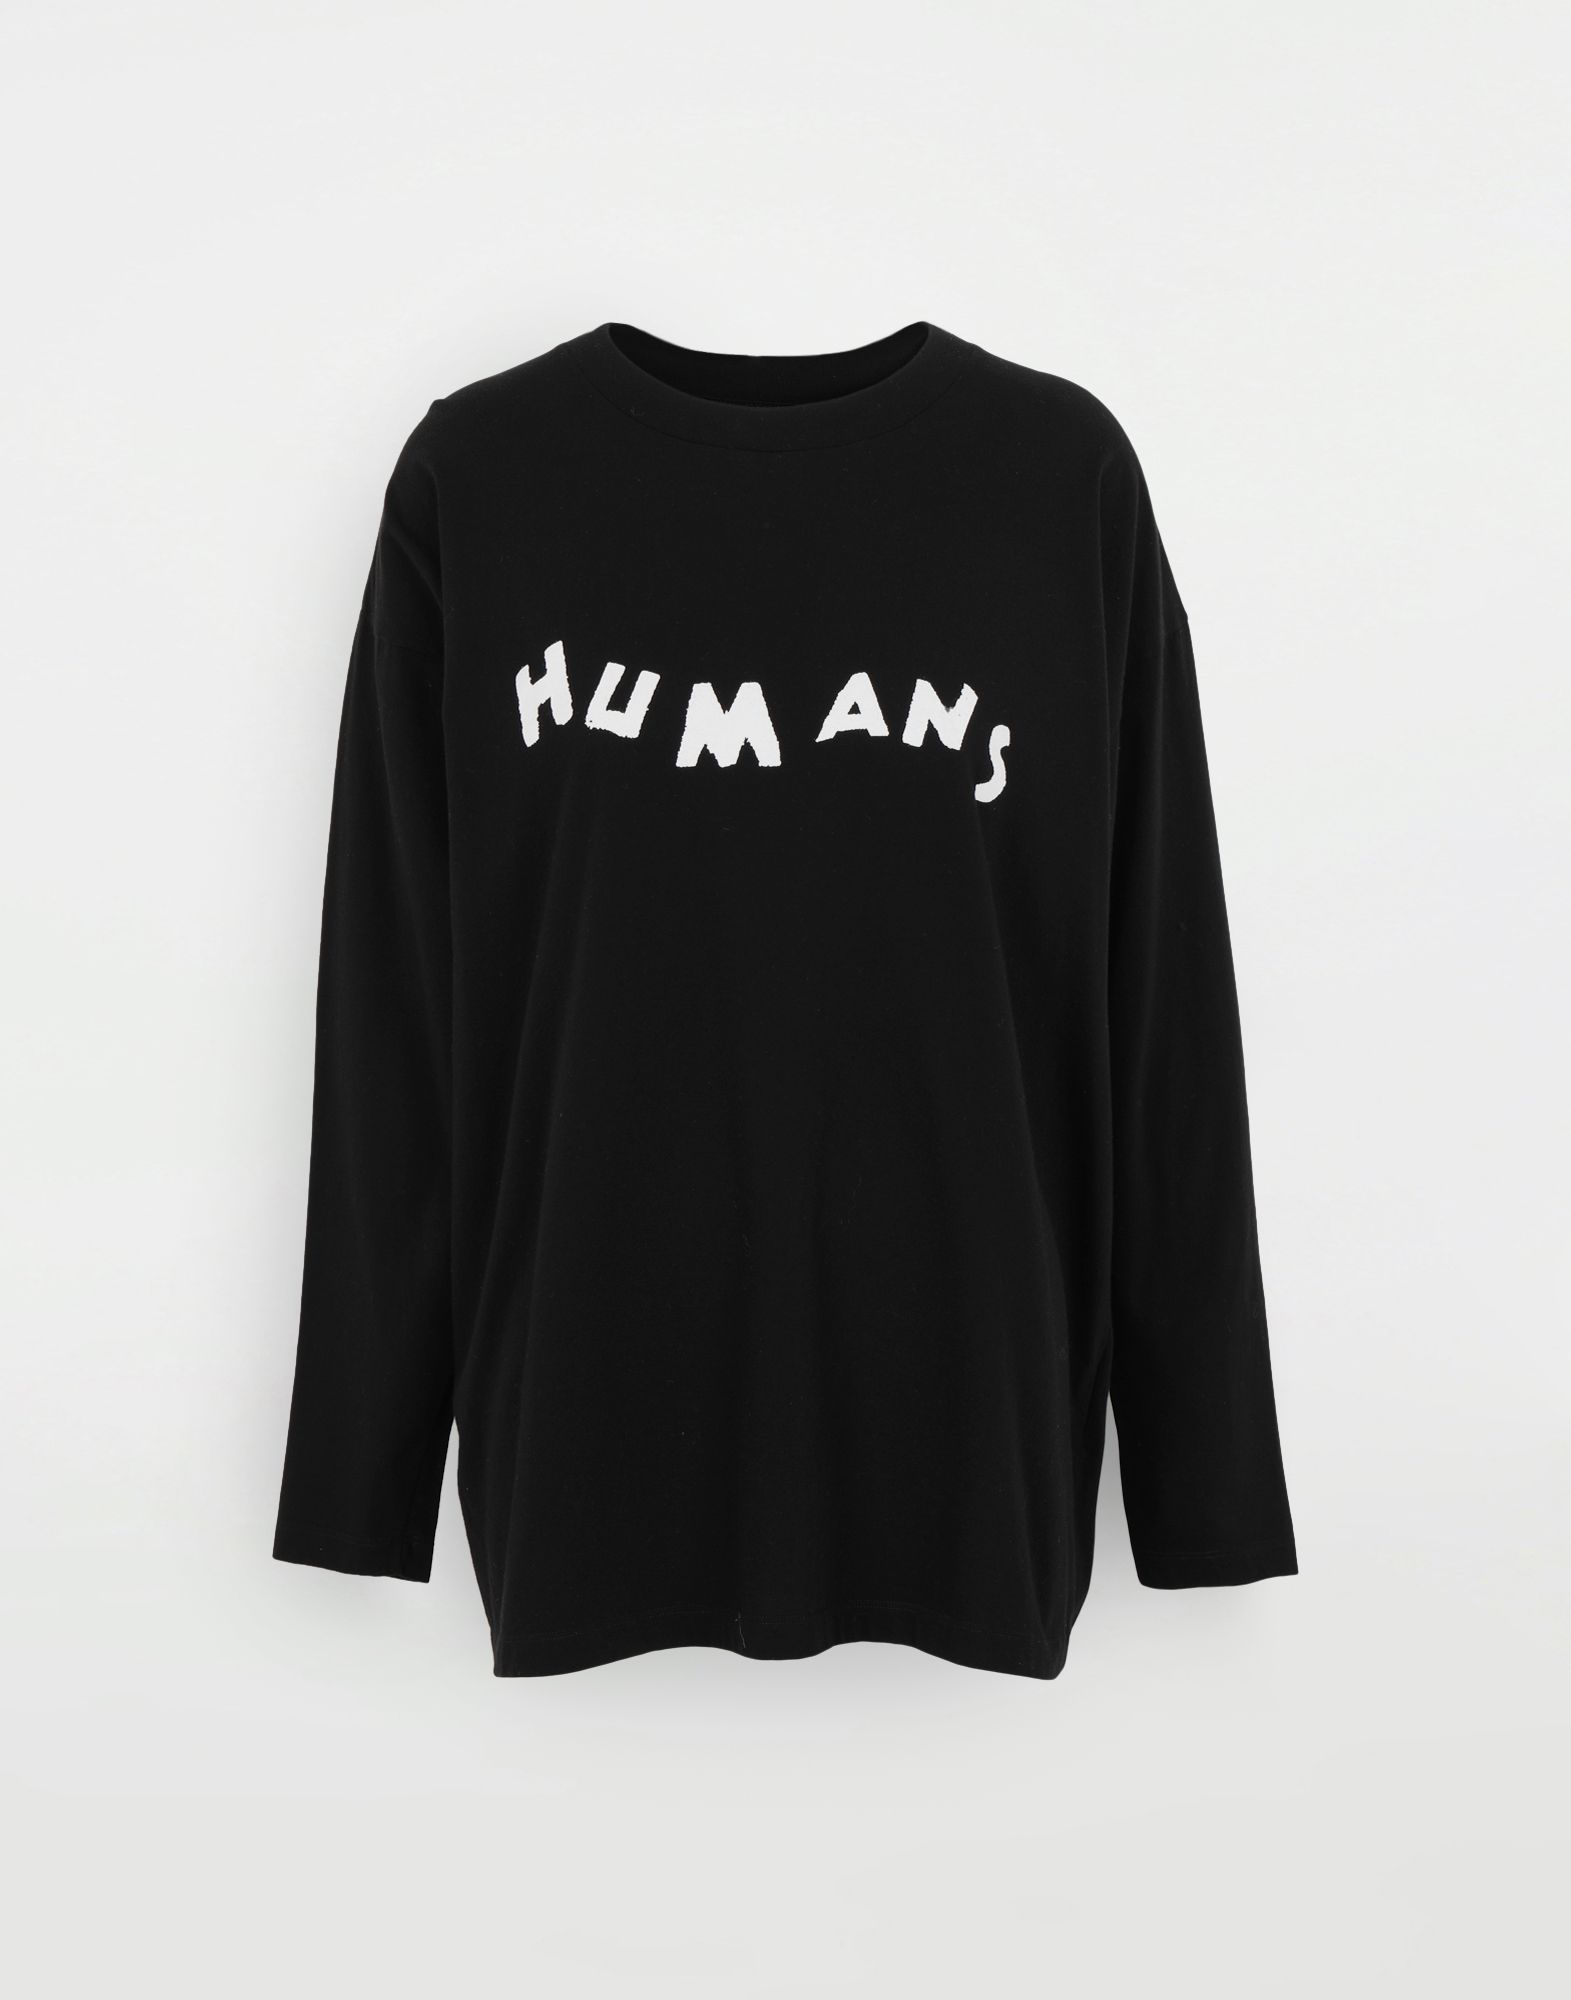 MM6 MAISON MARGIELA Sudadera 'Humans' Camiseta de manga larga Mujer f